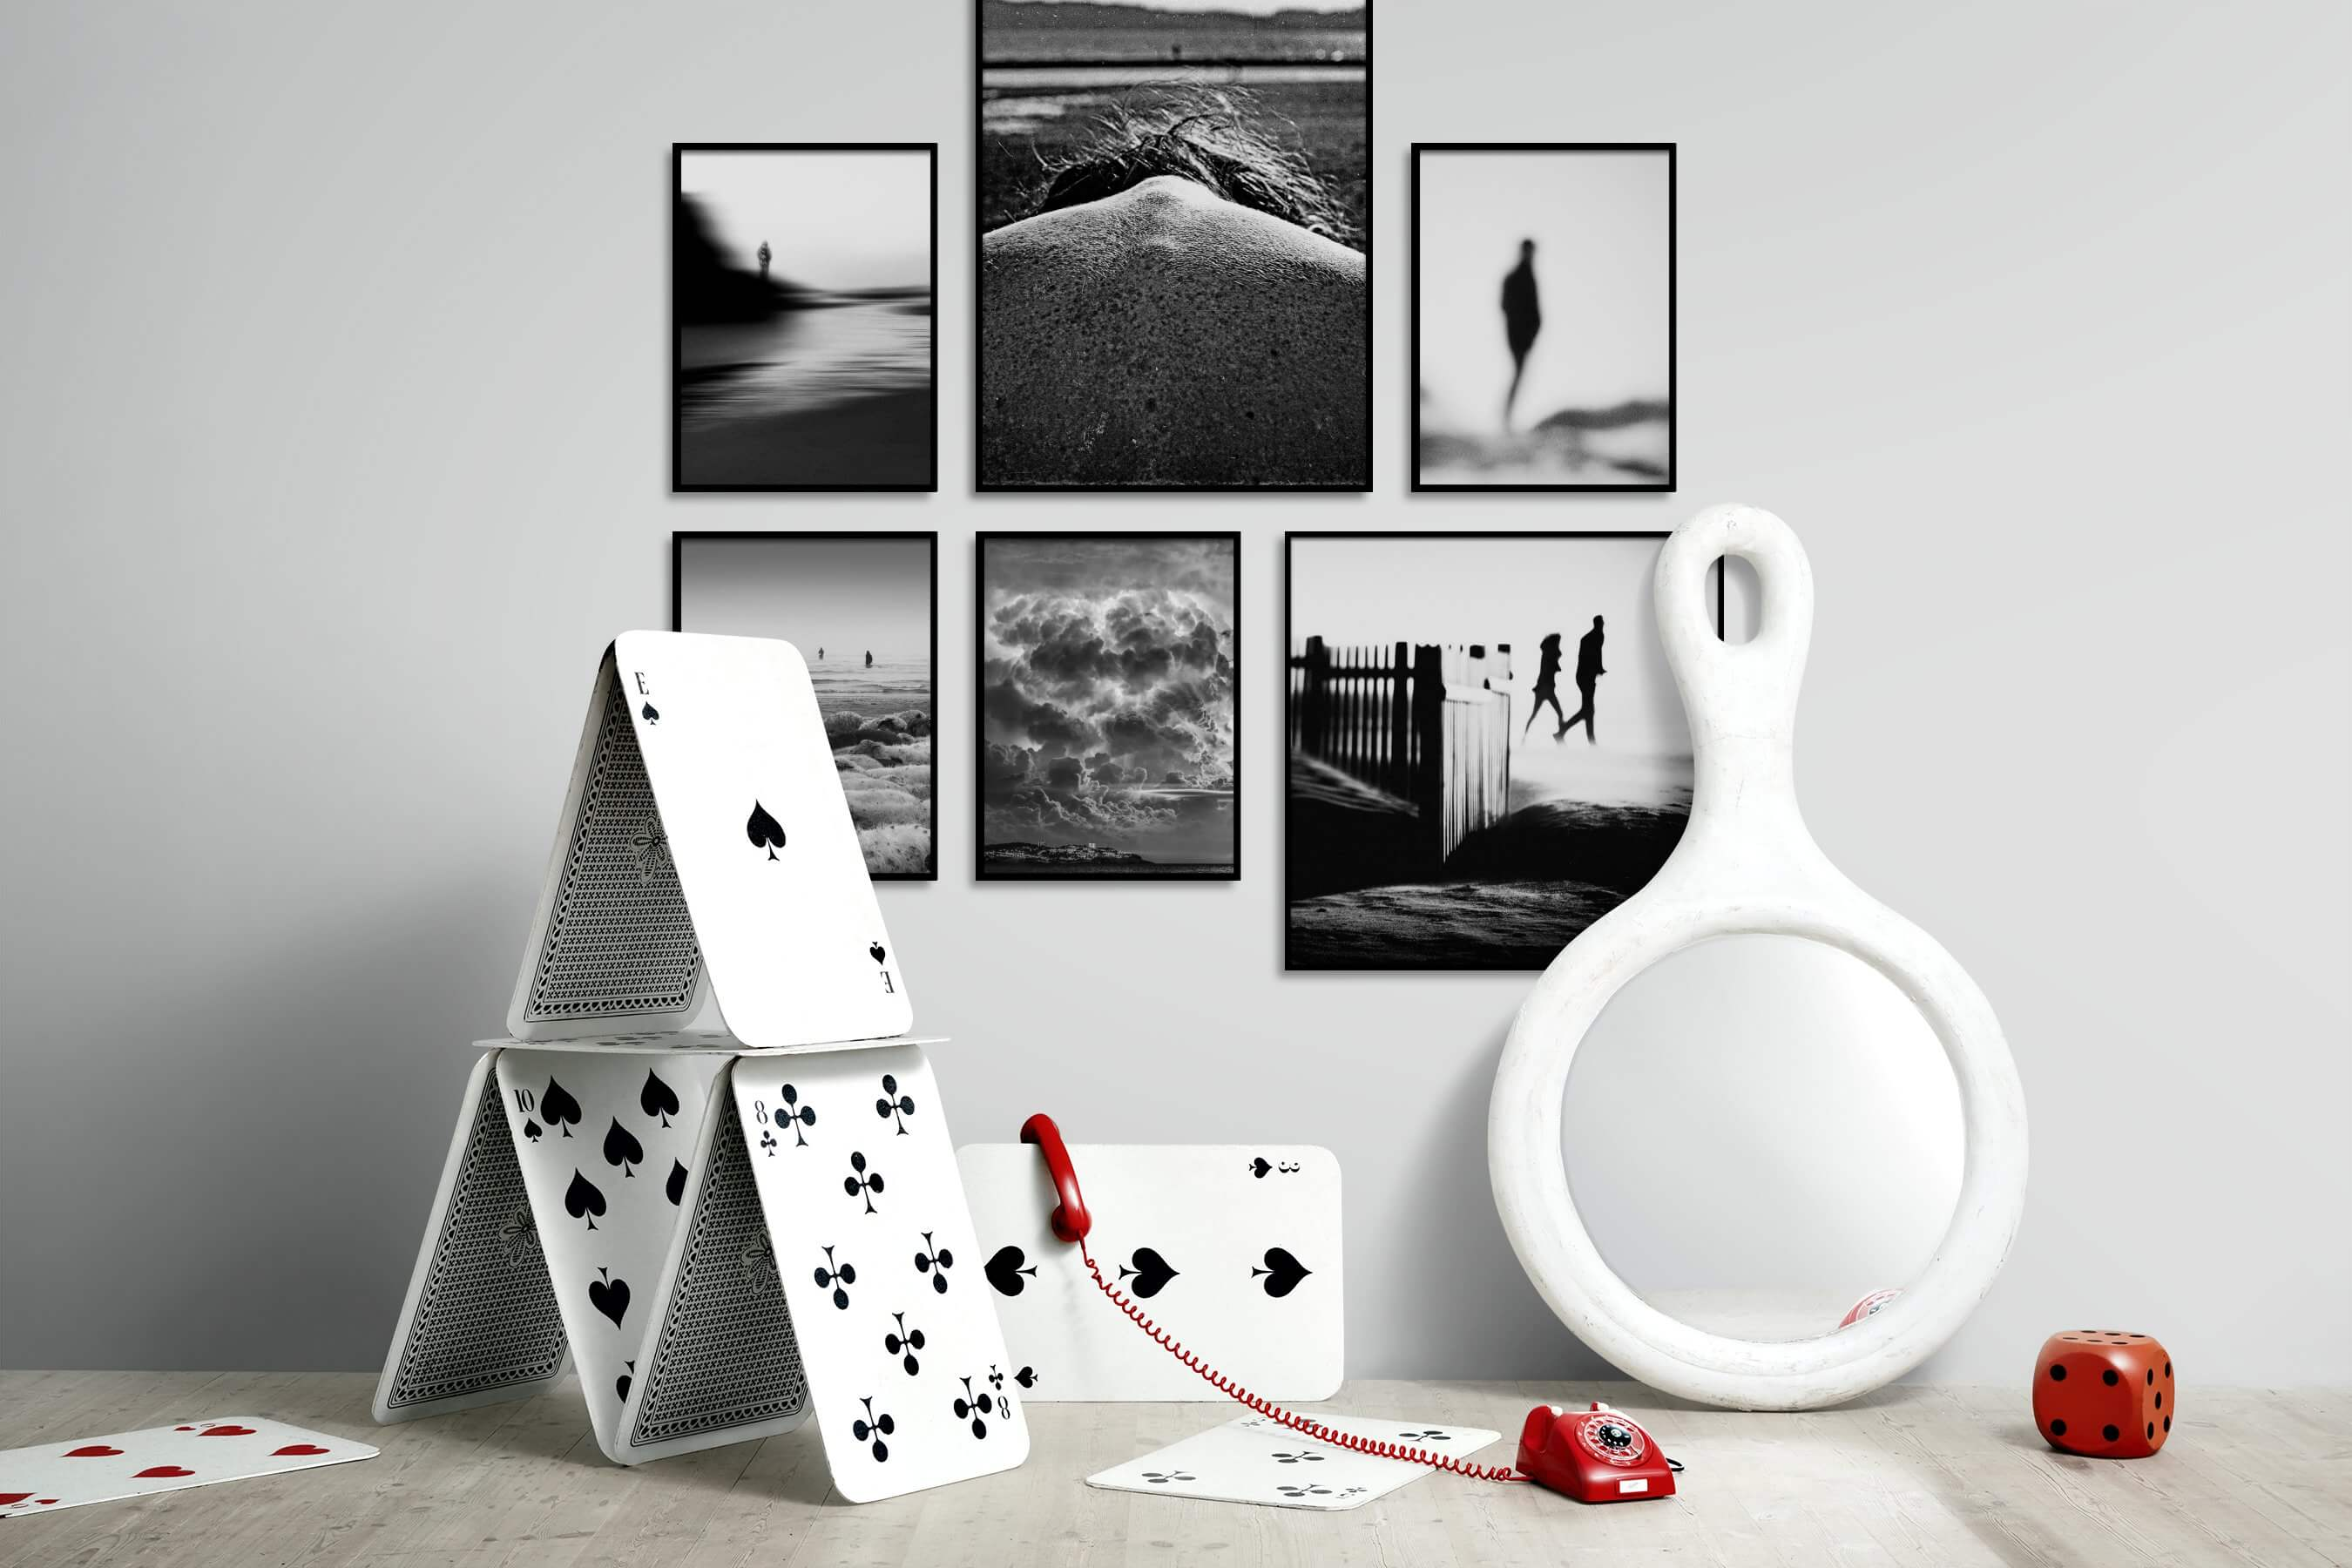 Gallery wall idea with six framed pictures arranged on a wall depicting Black & White, Artsy, Animals, Beach & Water, Country Life, Nature, and For the Minimalist